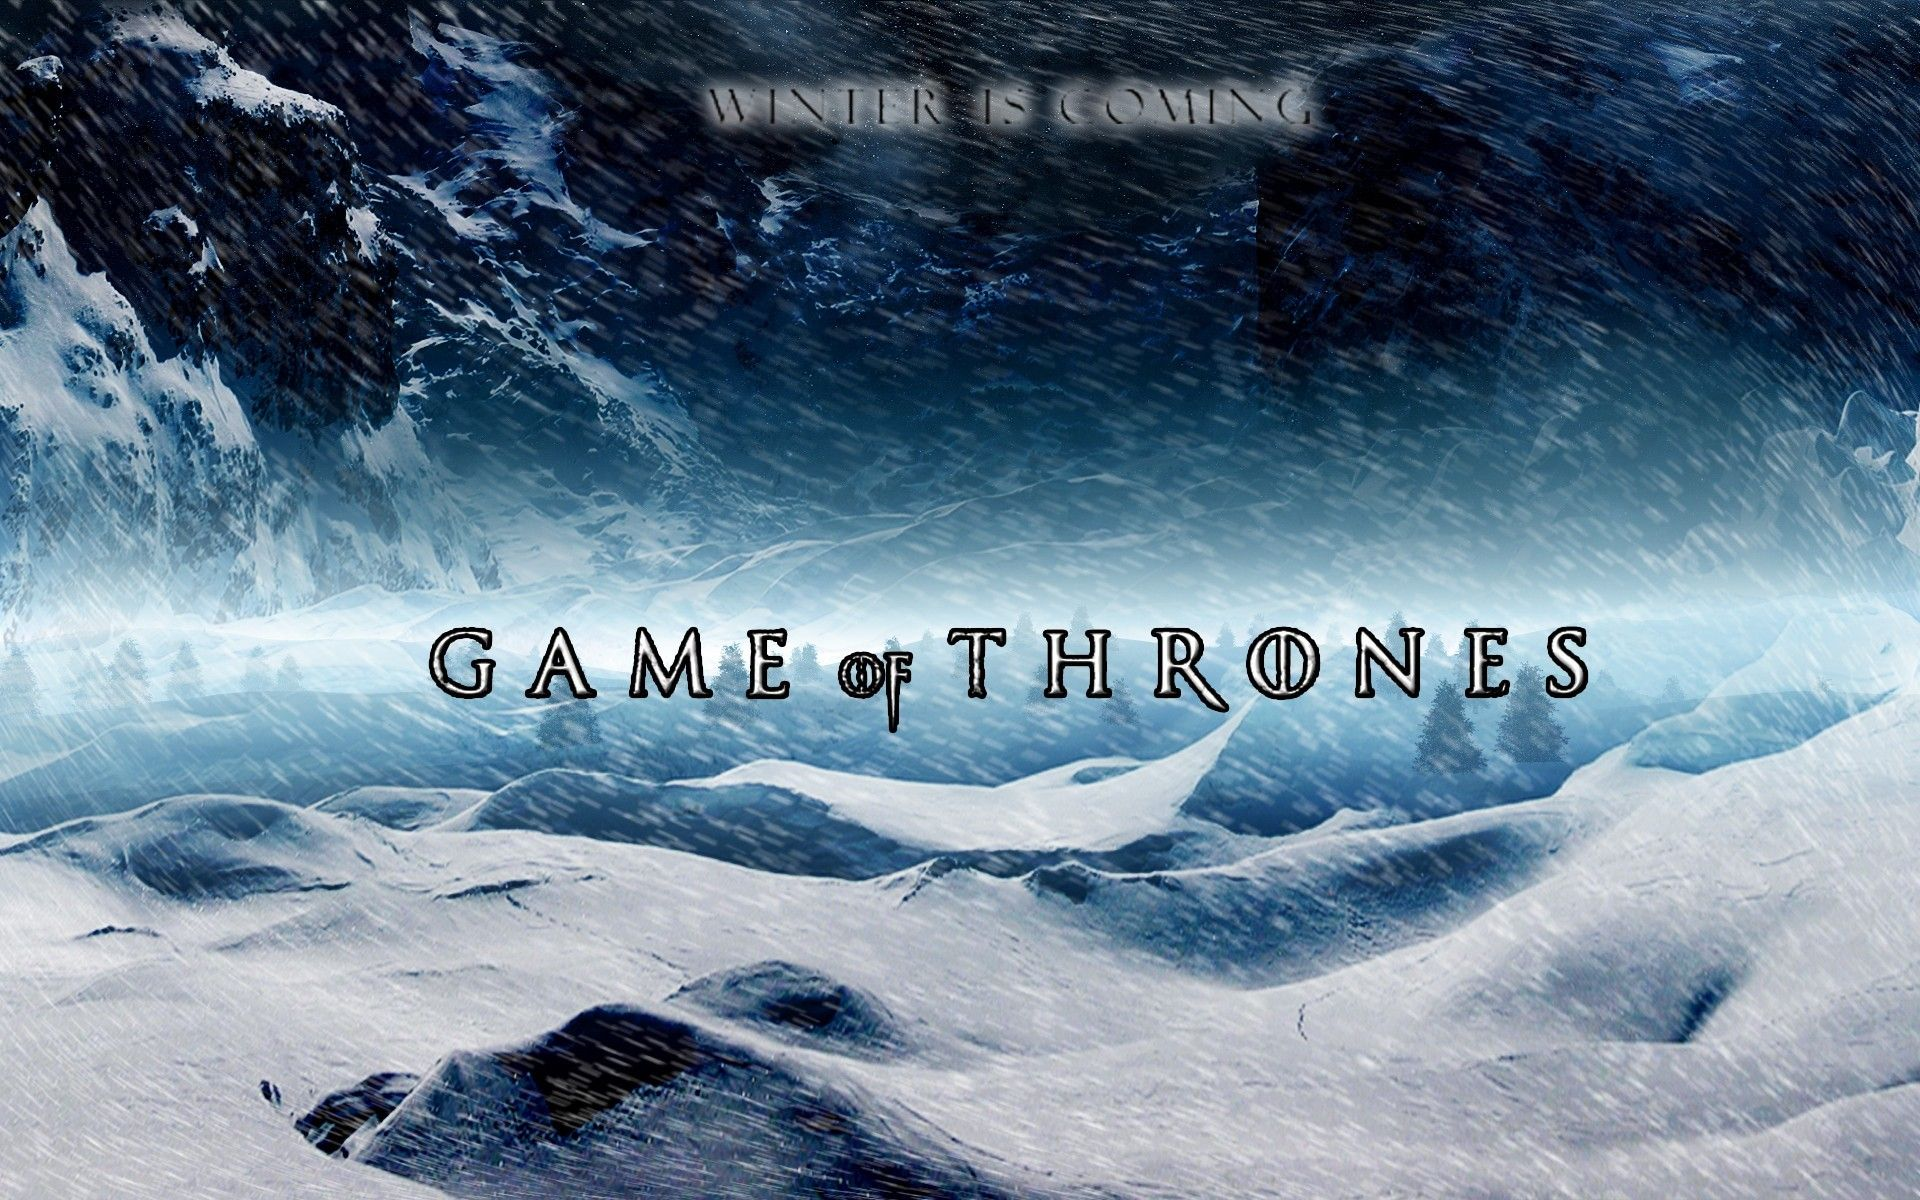 Download Snowy Game Of Thrones Wallpaper Game Of Thrones Winter Game Of Thrones Images Winter Is Coming Stark